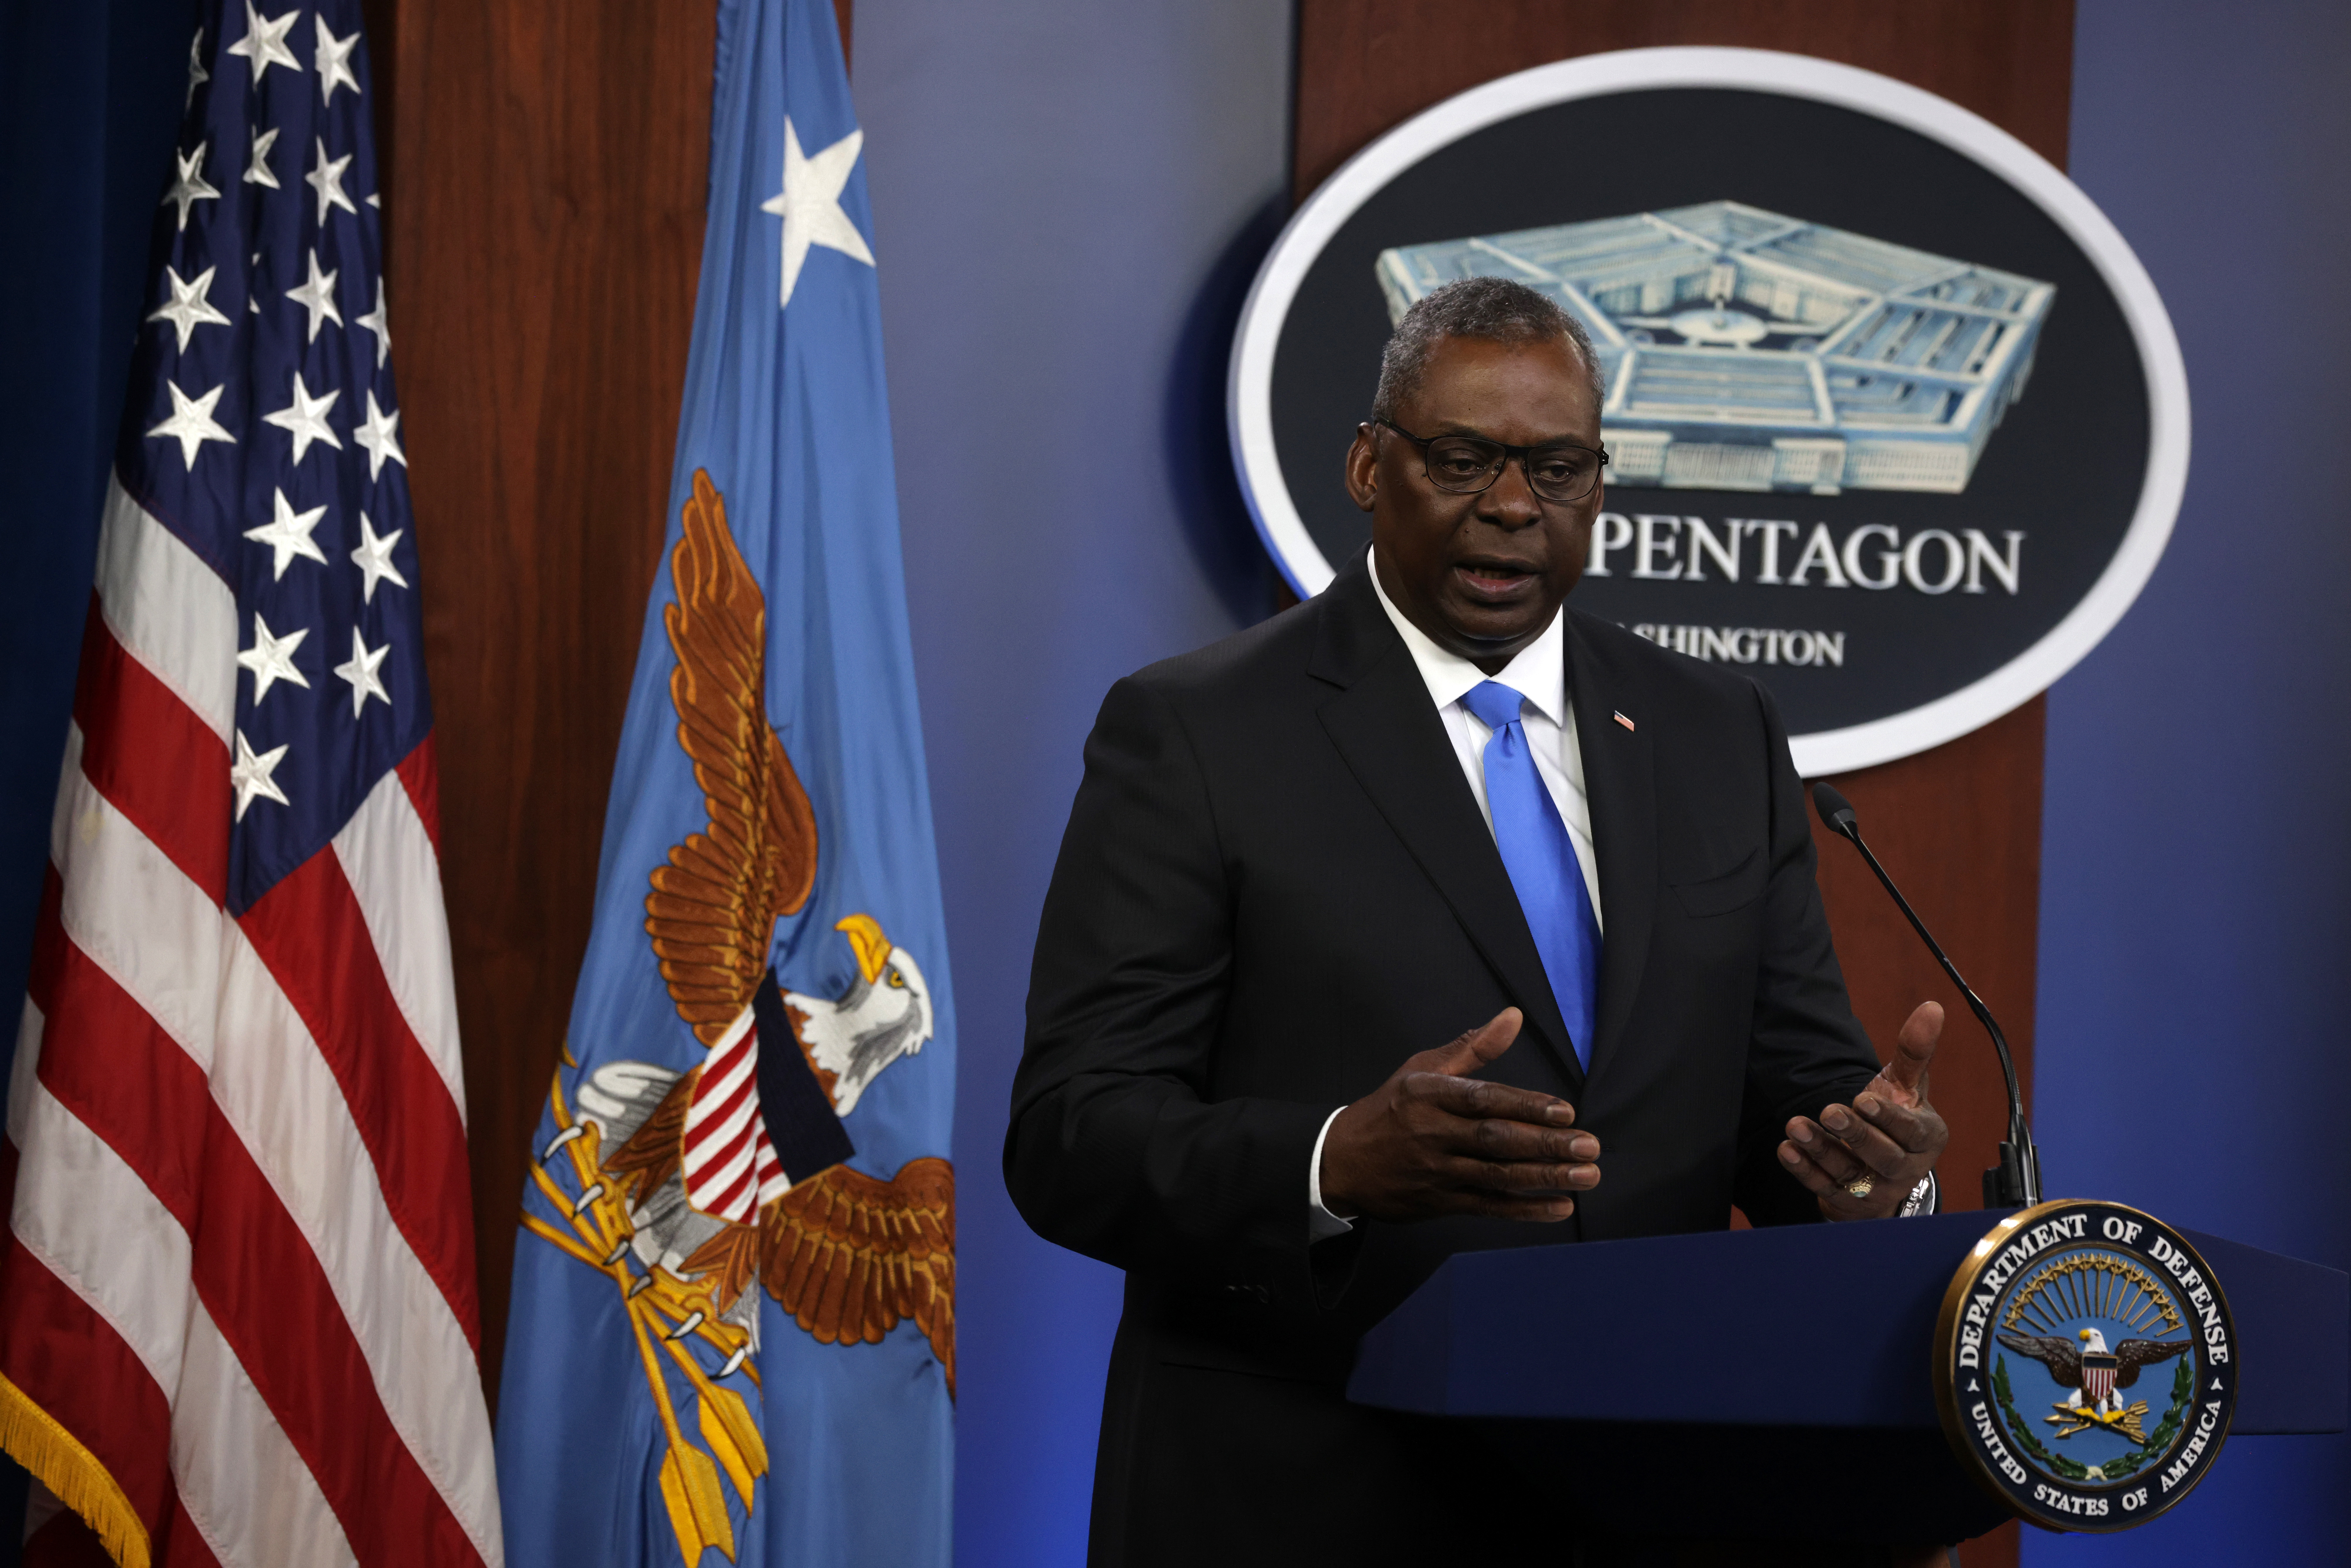 U.S. Secretary of Defense Lloyd Austin speaks during a news briefing at the Pentagon in Arlington, Virginia. (Photo by Alex Wong/Getty Images)